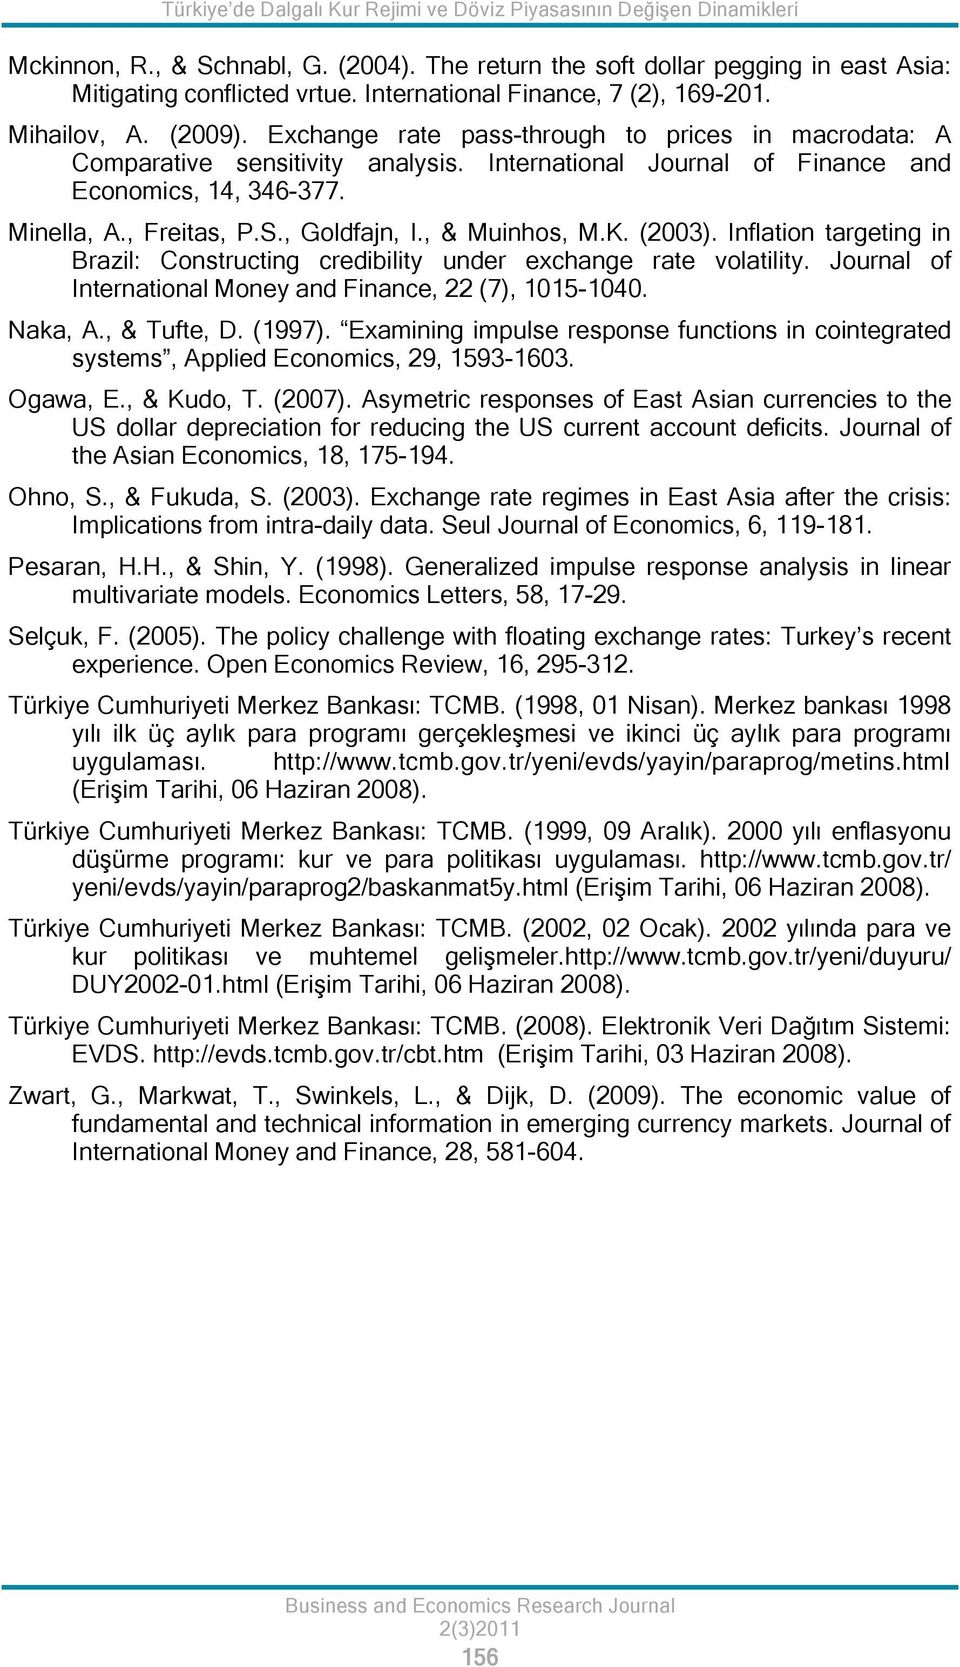 International Journal of Finance and Economics, 14, 346-377. Minella, A., Freitas, P.S., Goldfajn, I., & Muinhos, M.K. (2003).